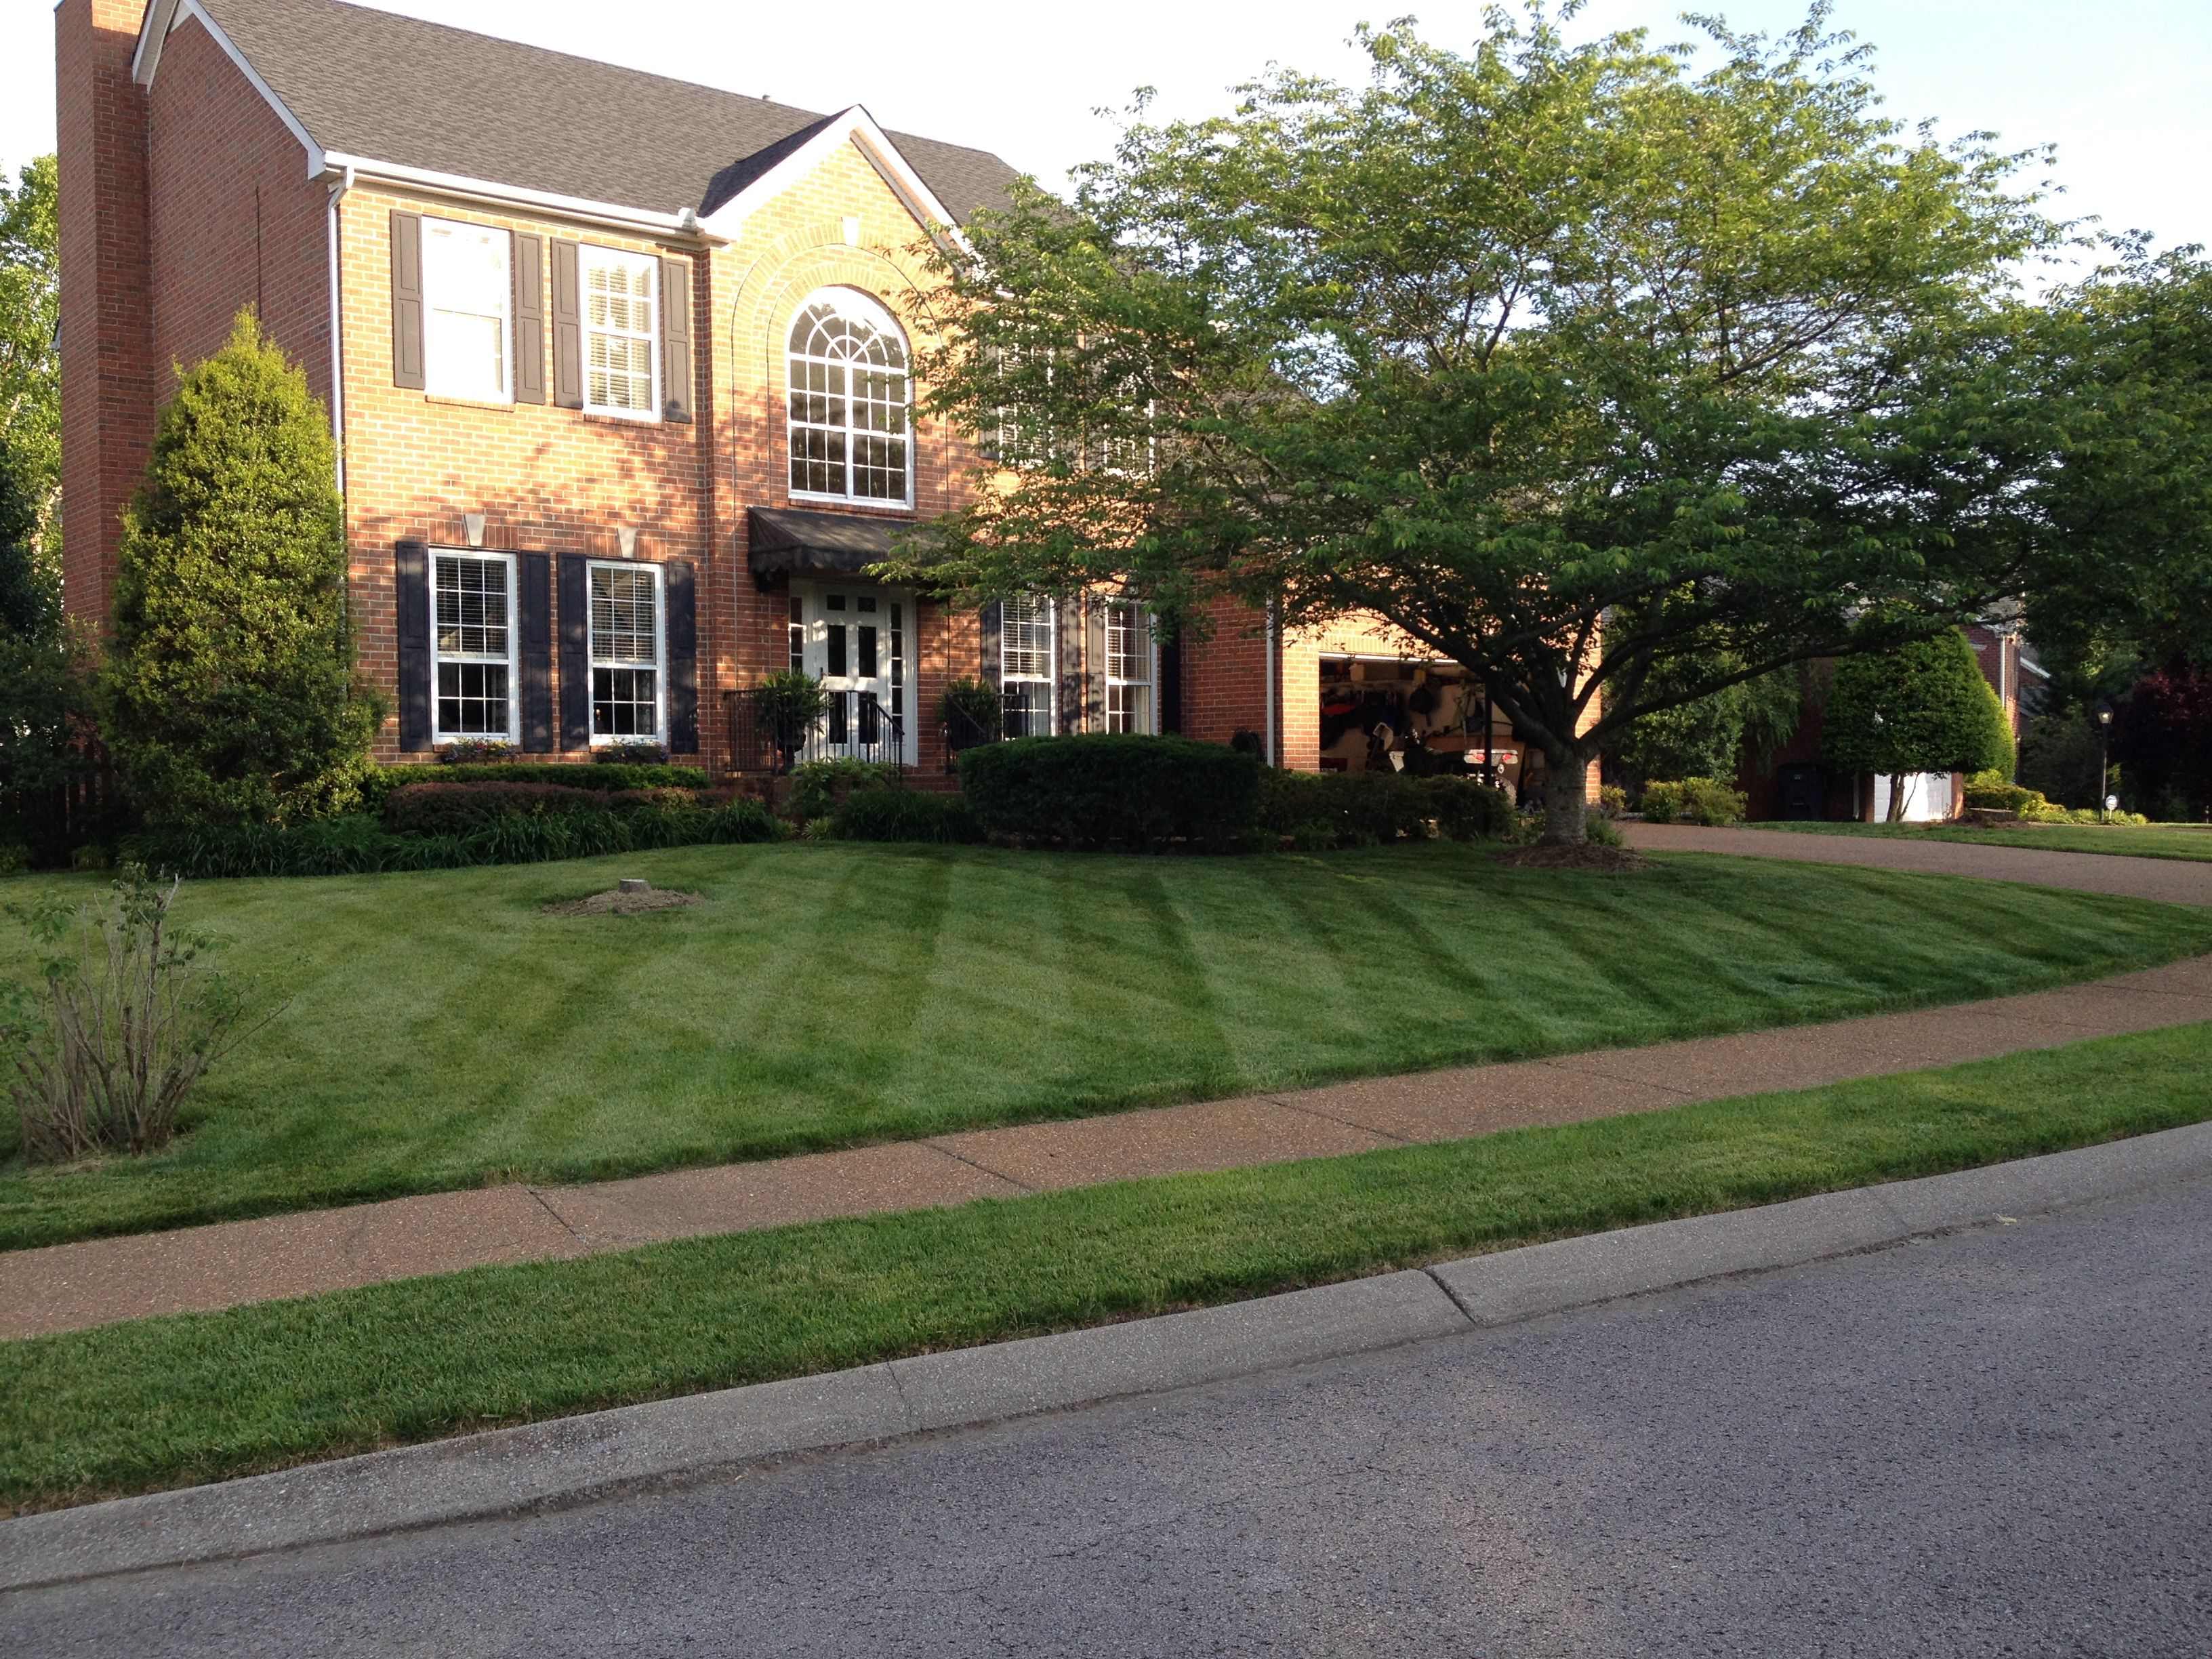 Yard mowing company in Nashville, TN, 37221